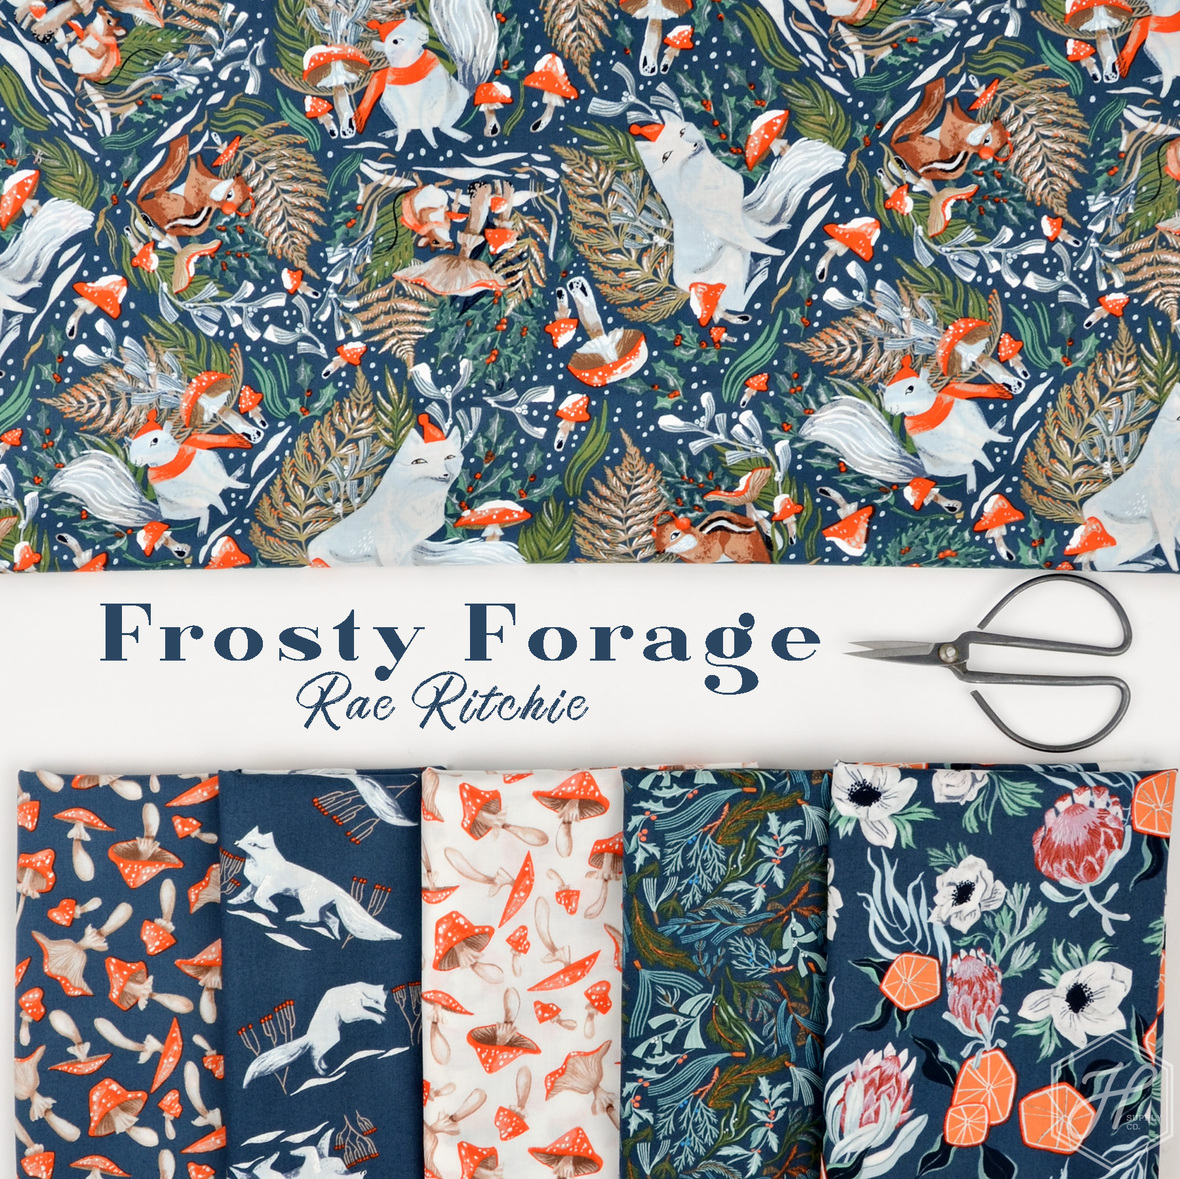 Frosty-Forage-fabric-Rae-Ritchie-for-Dear-Stella-at-Hawthorne-Supply-Co